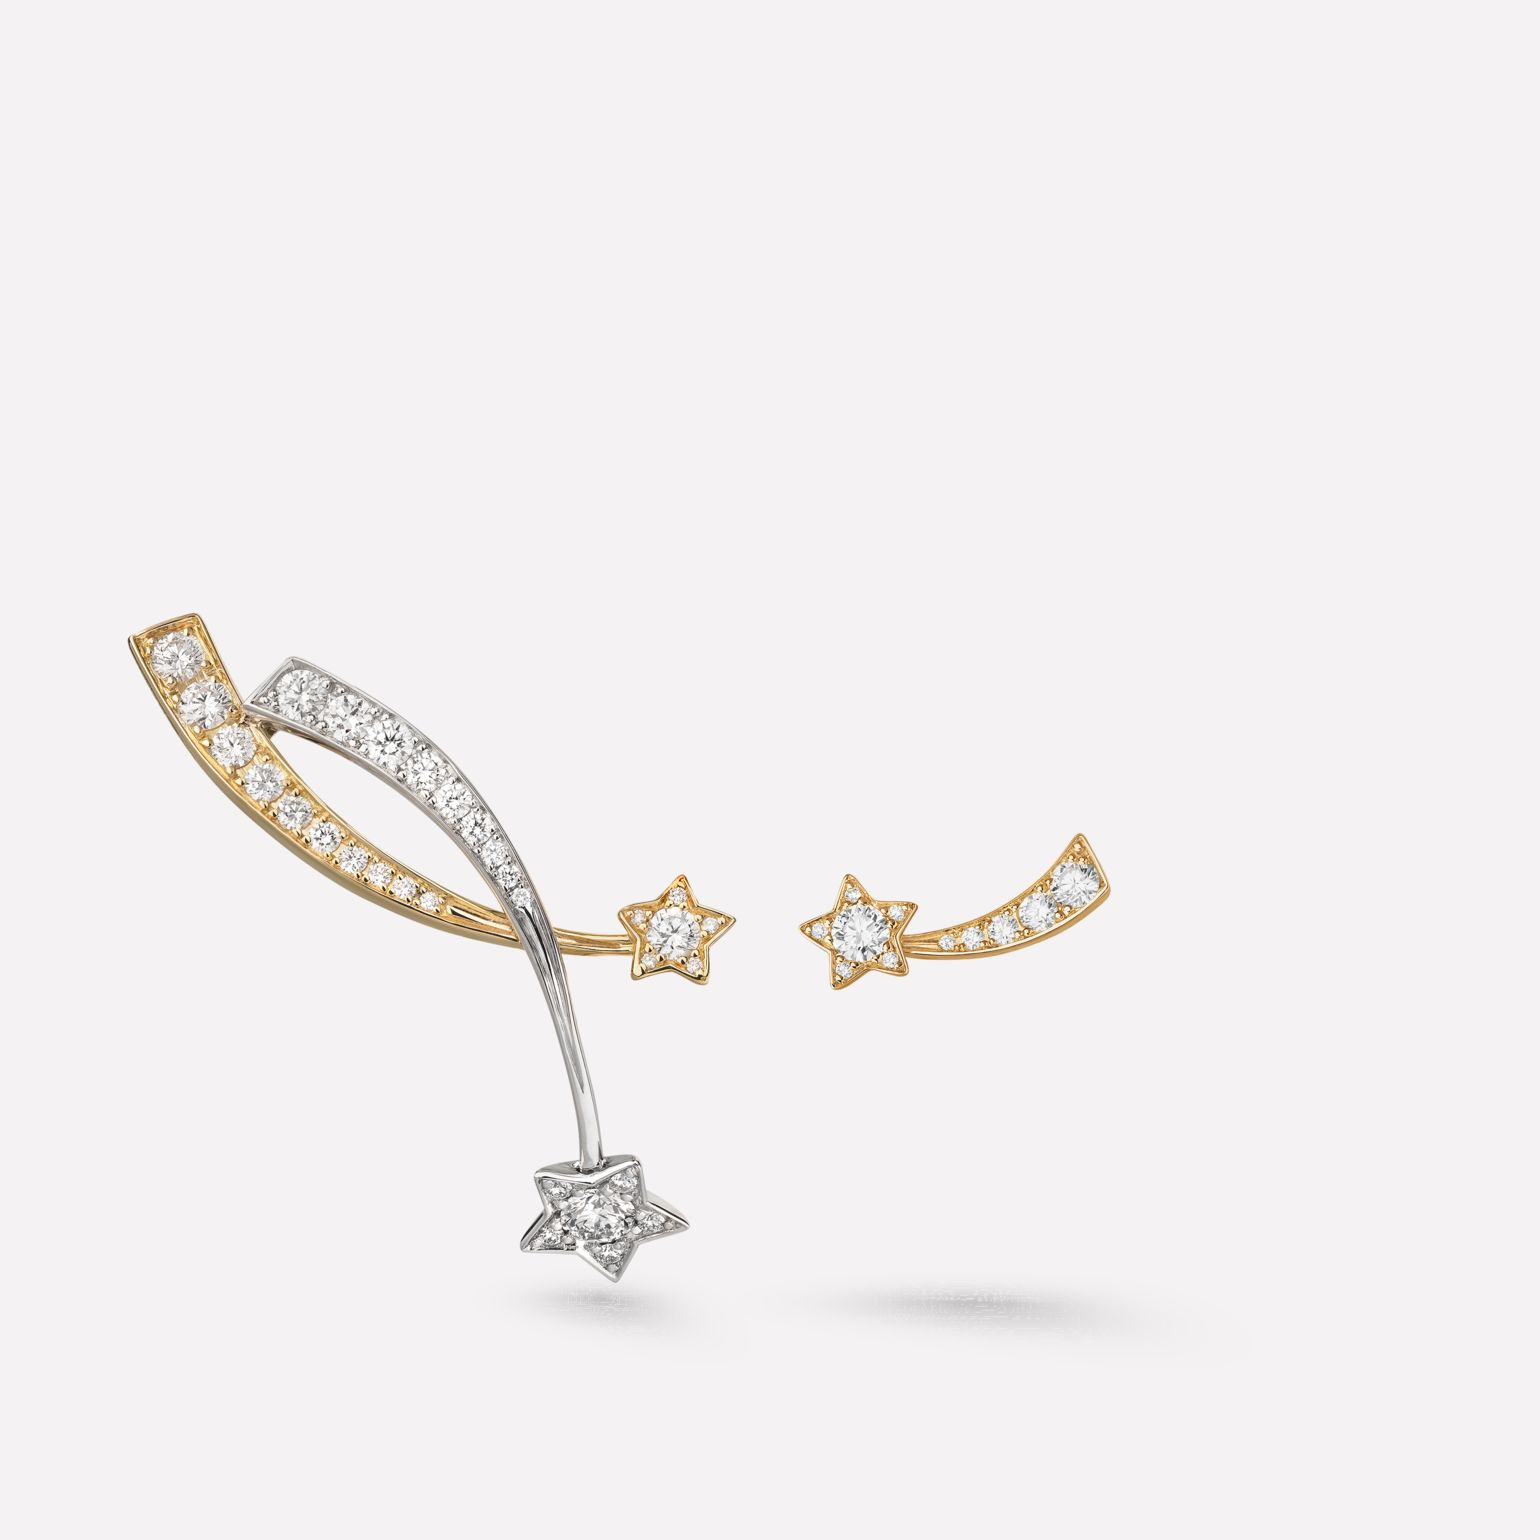 Comète earrings Shooting star earrings in 18K white gold and yellow gold and diamonds